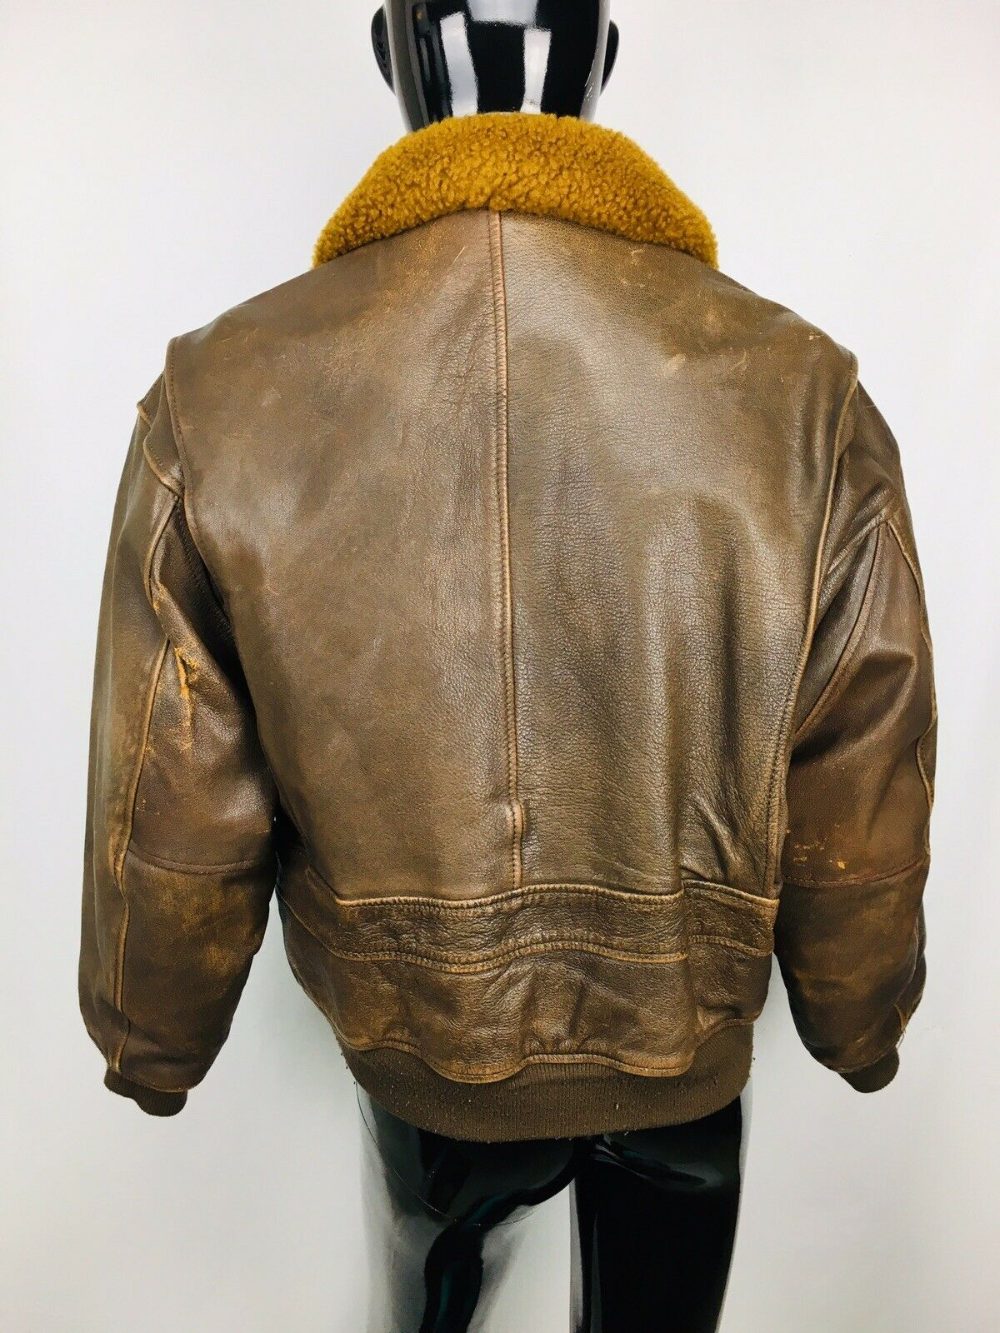 Details about Authentic VTG Avirex Leather Flight Bomber